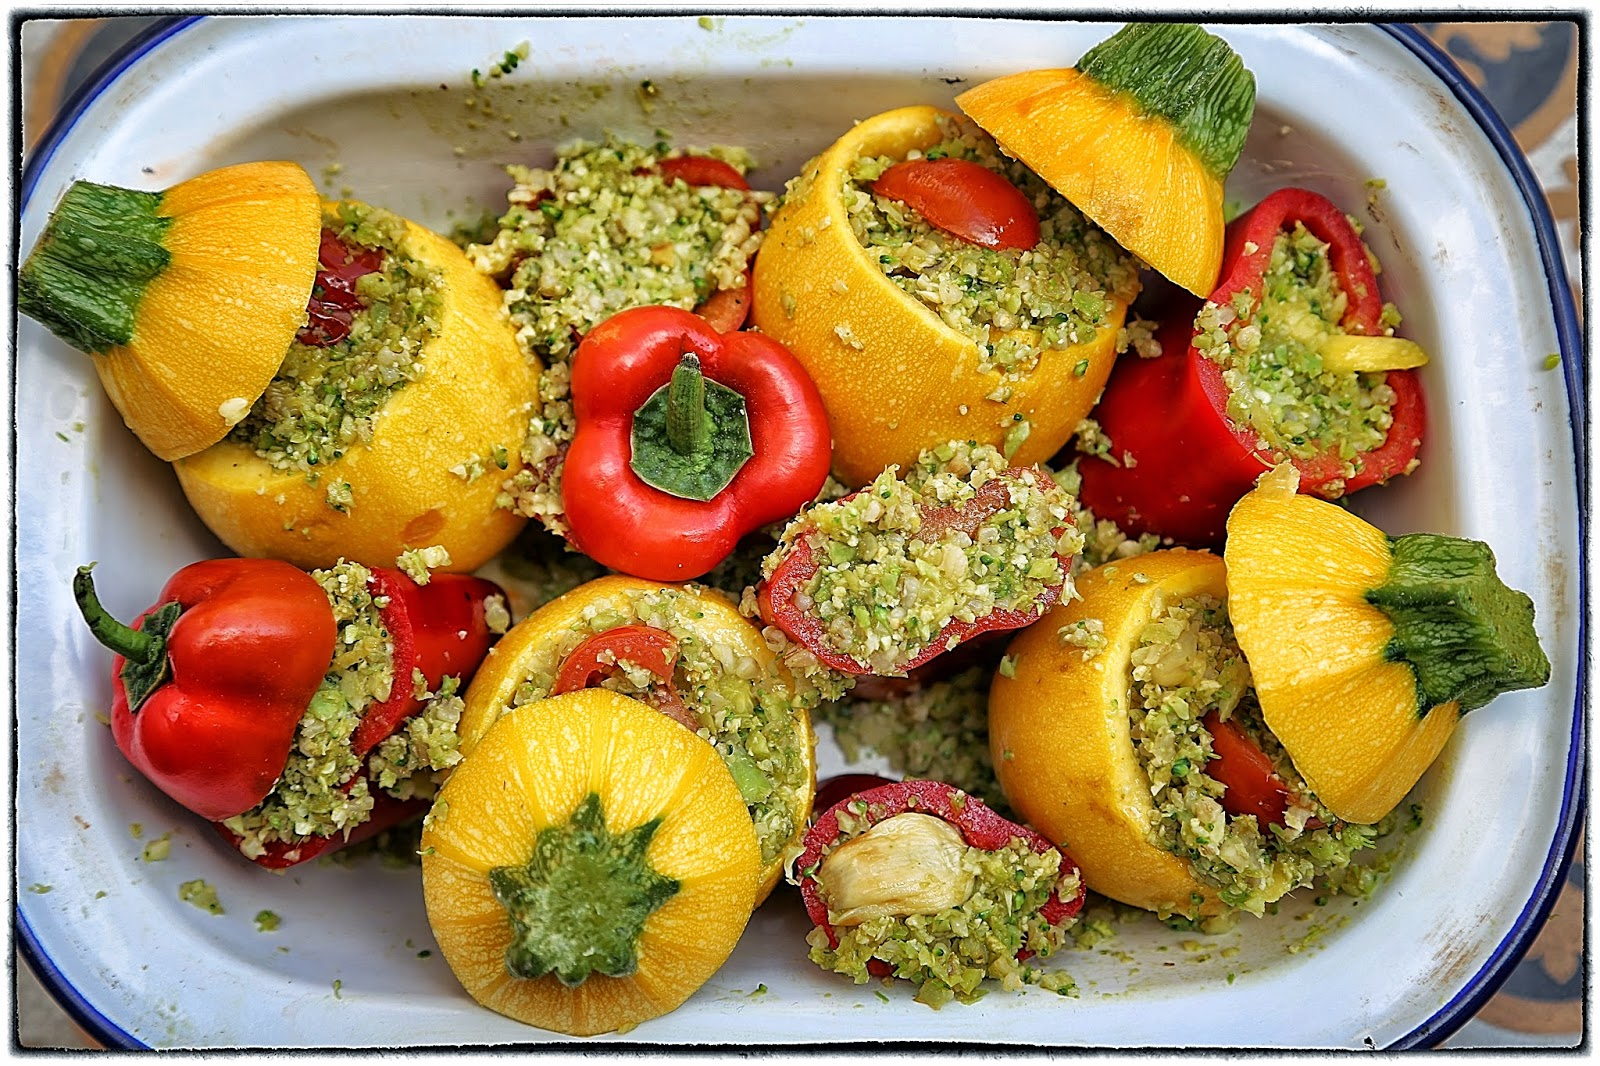 Stuffed yellow courgette and red pepper bake